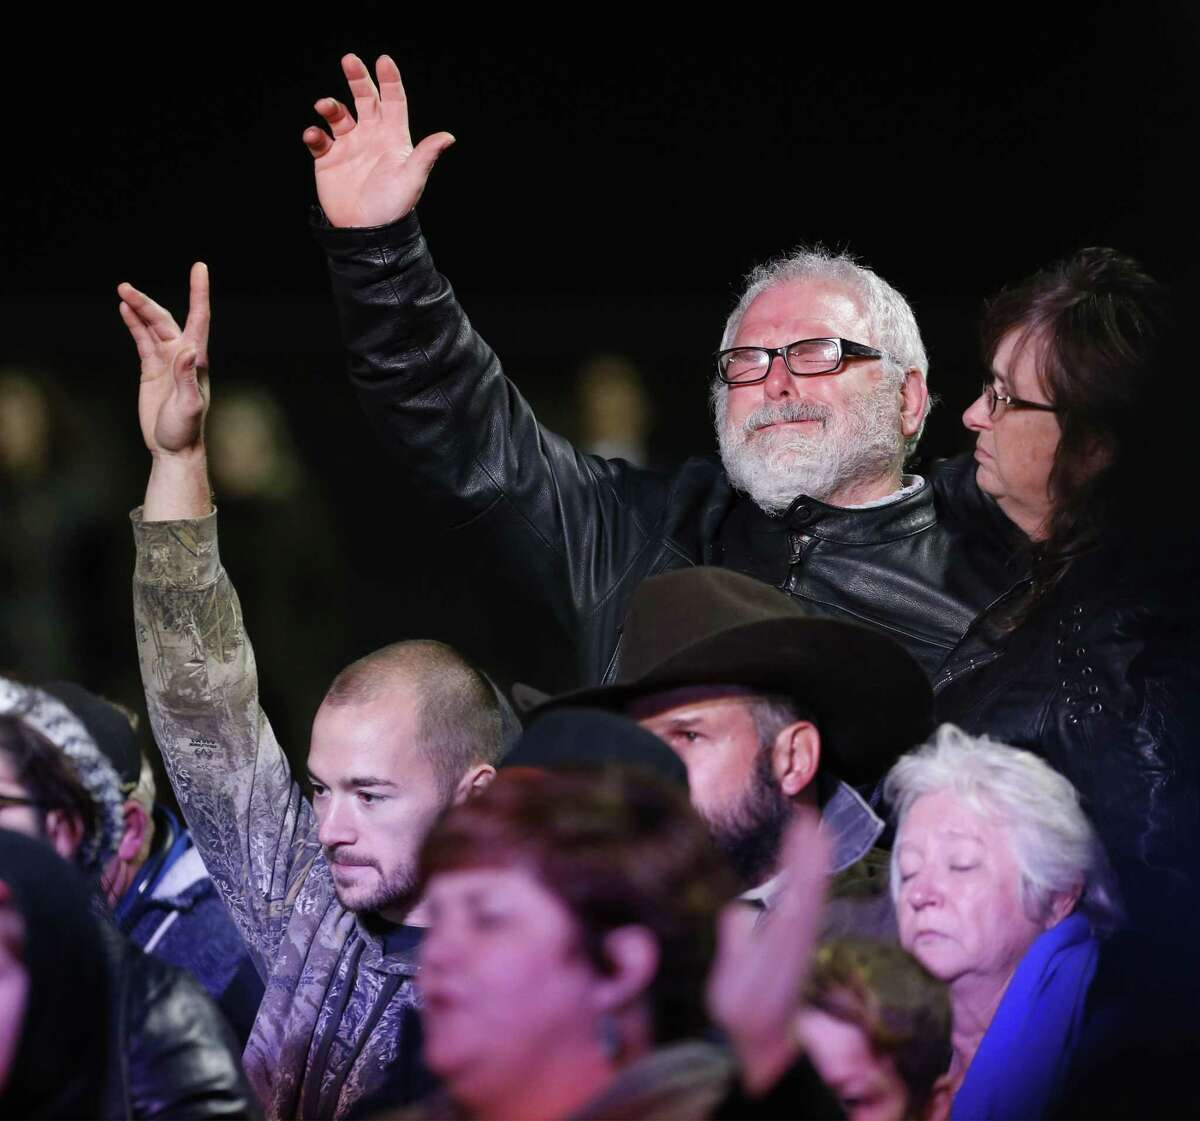 Stephen Willeford (top right) becomes emotional as he joins in prayer with the First Baptist Church families as Vice-president Mike Pence makes remarks at Floresville High School to pay respects to the victims of Sunday's church shooting at First Baptist Church in Sutherland Springs, Texas on Wednesday, Nov. 8, 2017. (Kin Man Hui/San Antonio Express-News)